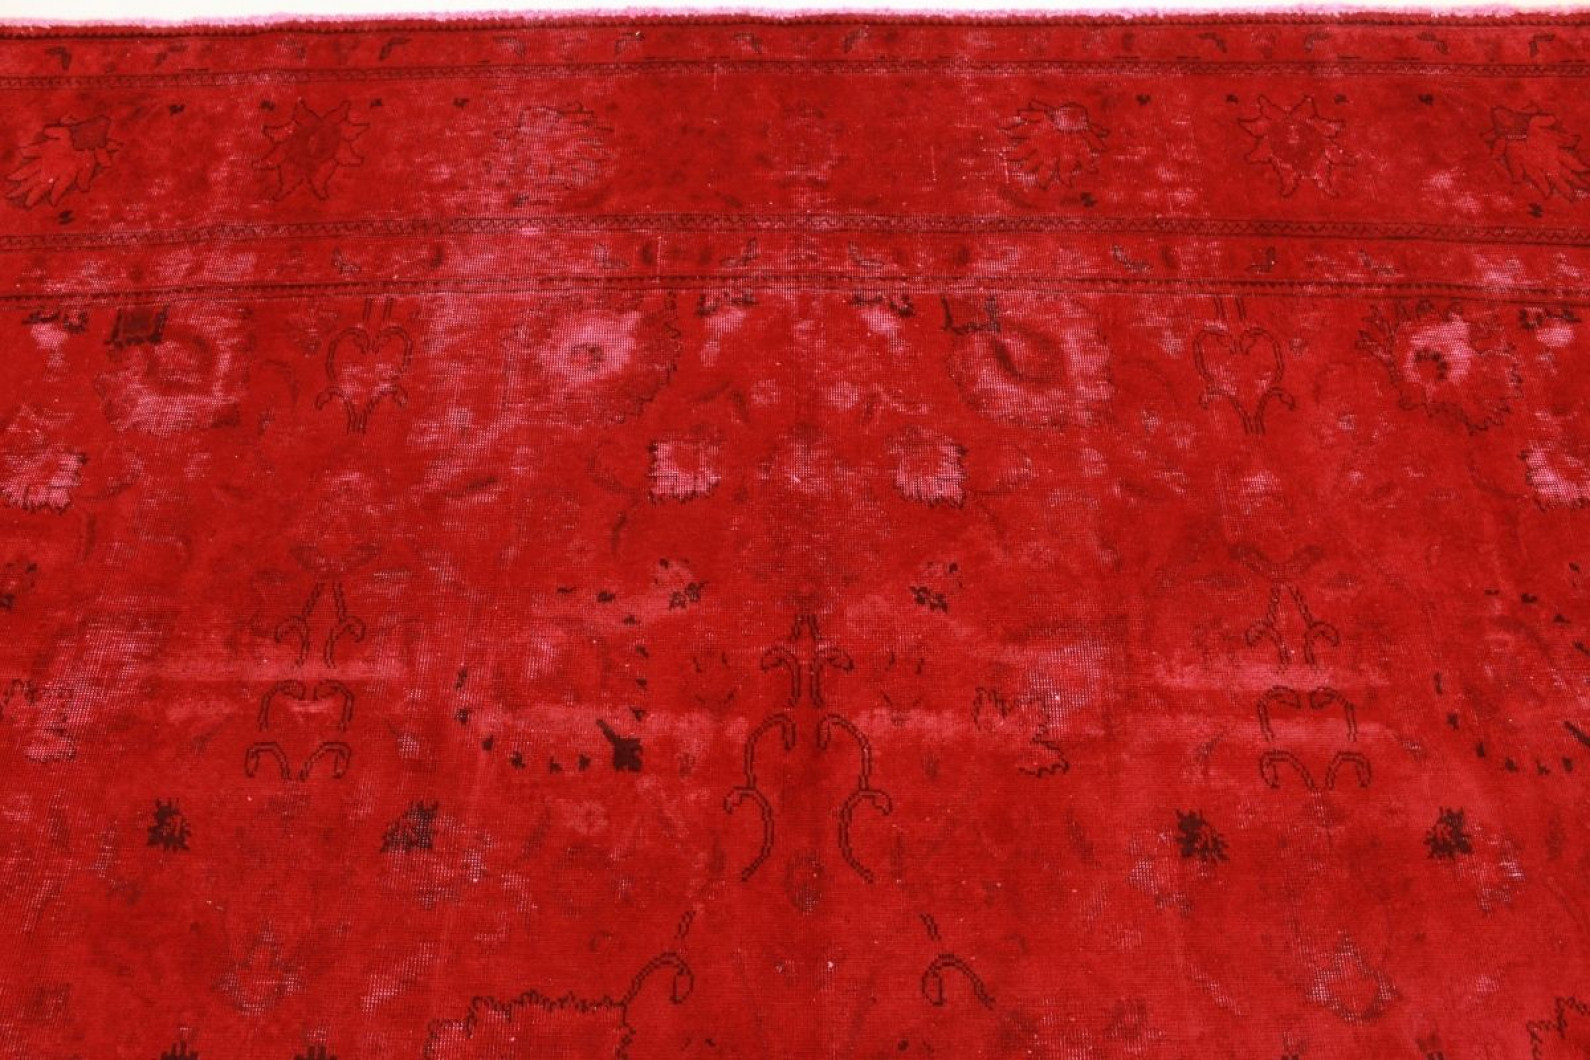 Vintage Rug Red In 300x300cm 1001 5064 Buy Online At